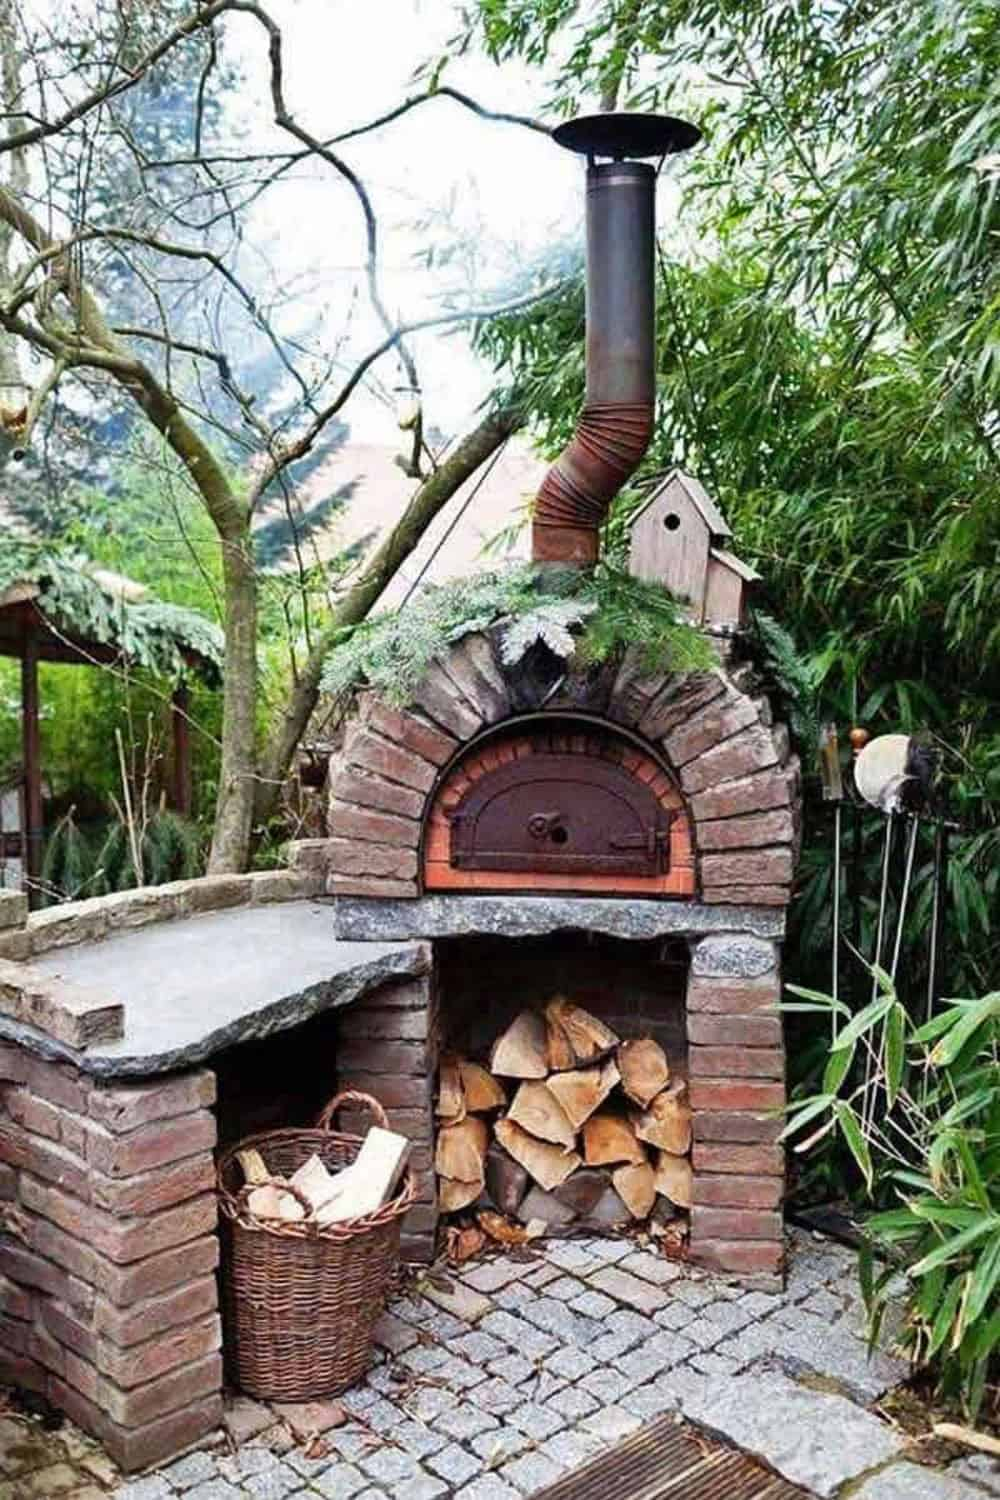 outdoor-entertaining-area-with-a-brick-pizza-oven